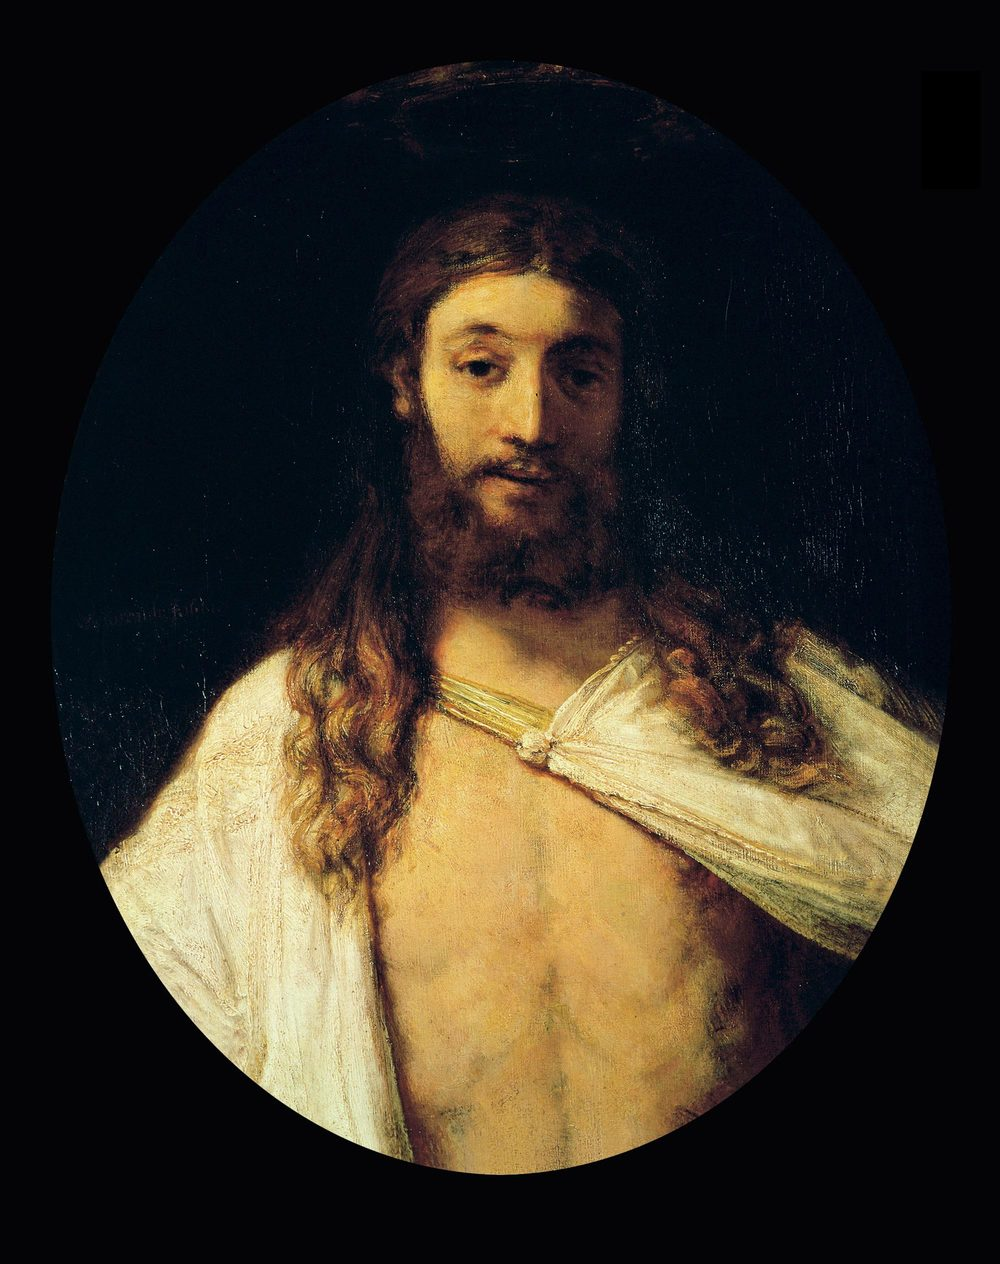 Rembrandt,  The Risen Chris t, oil on canvas, 1658, Alte Pinakothek, Munich